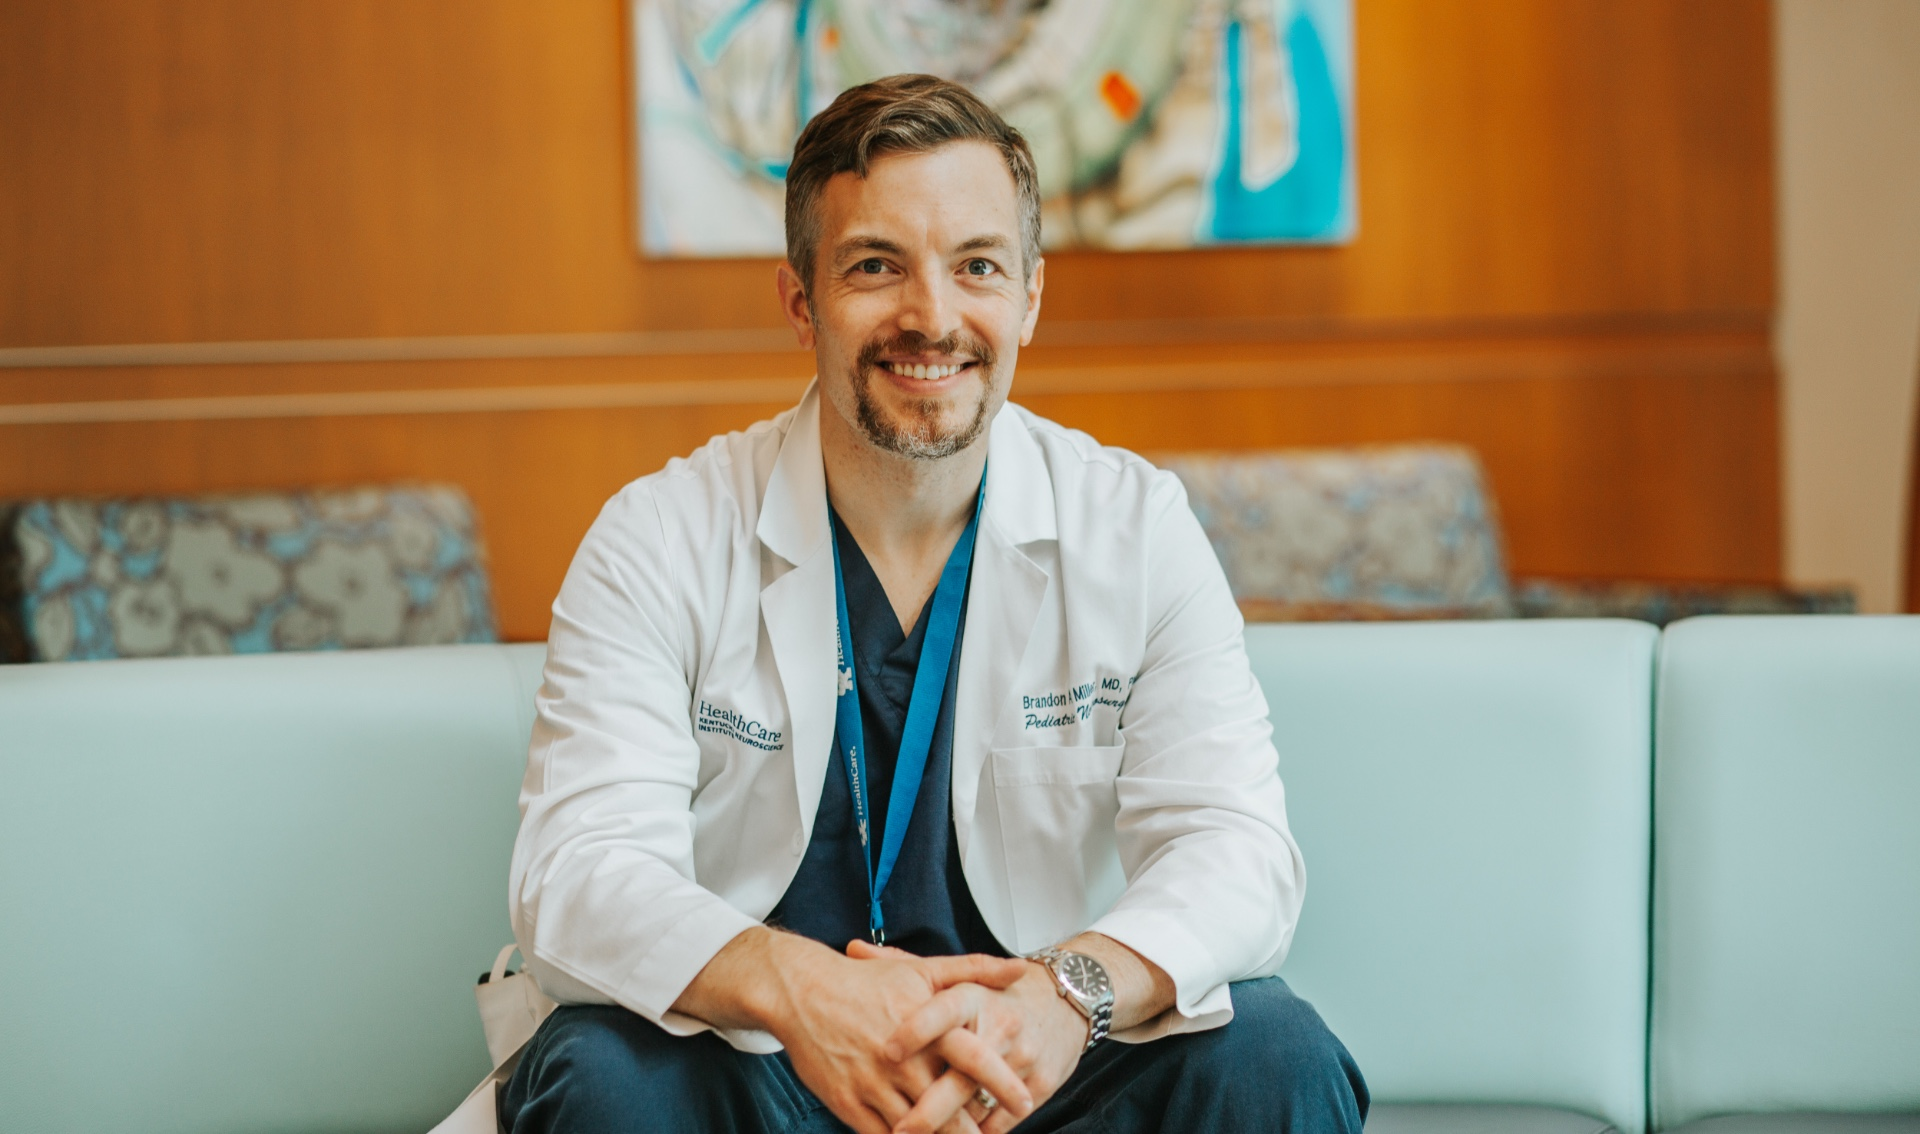 Dr. Brandon Miller, an adult white man with brown hair, sits in the lobby of UK Healthcare's Kentucky Children's Hospital, wearing a white doctor's coat and blue scrubs.